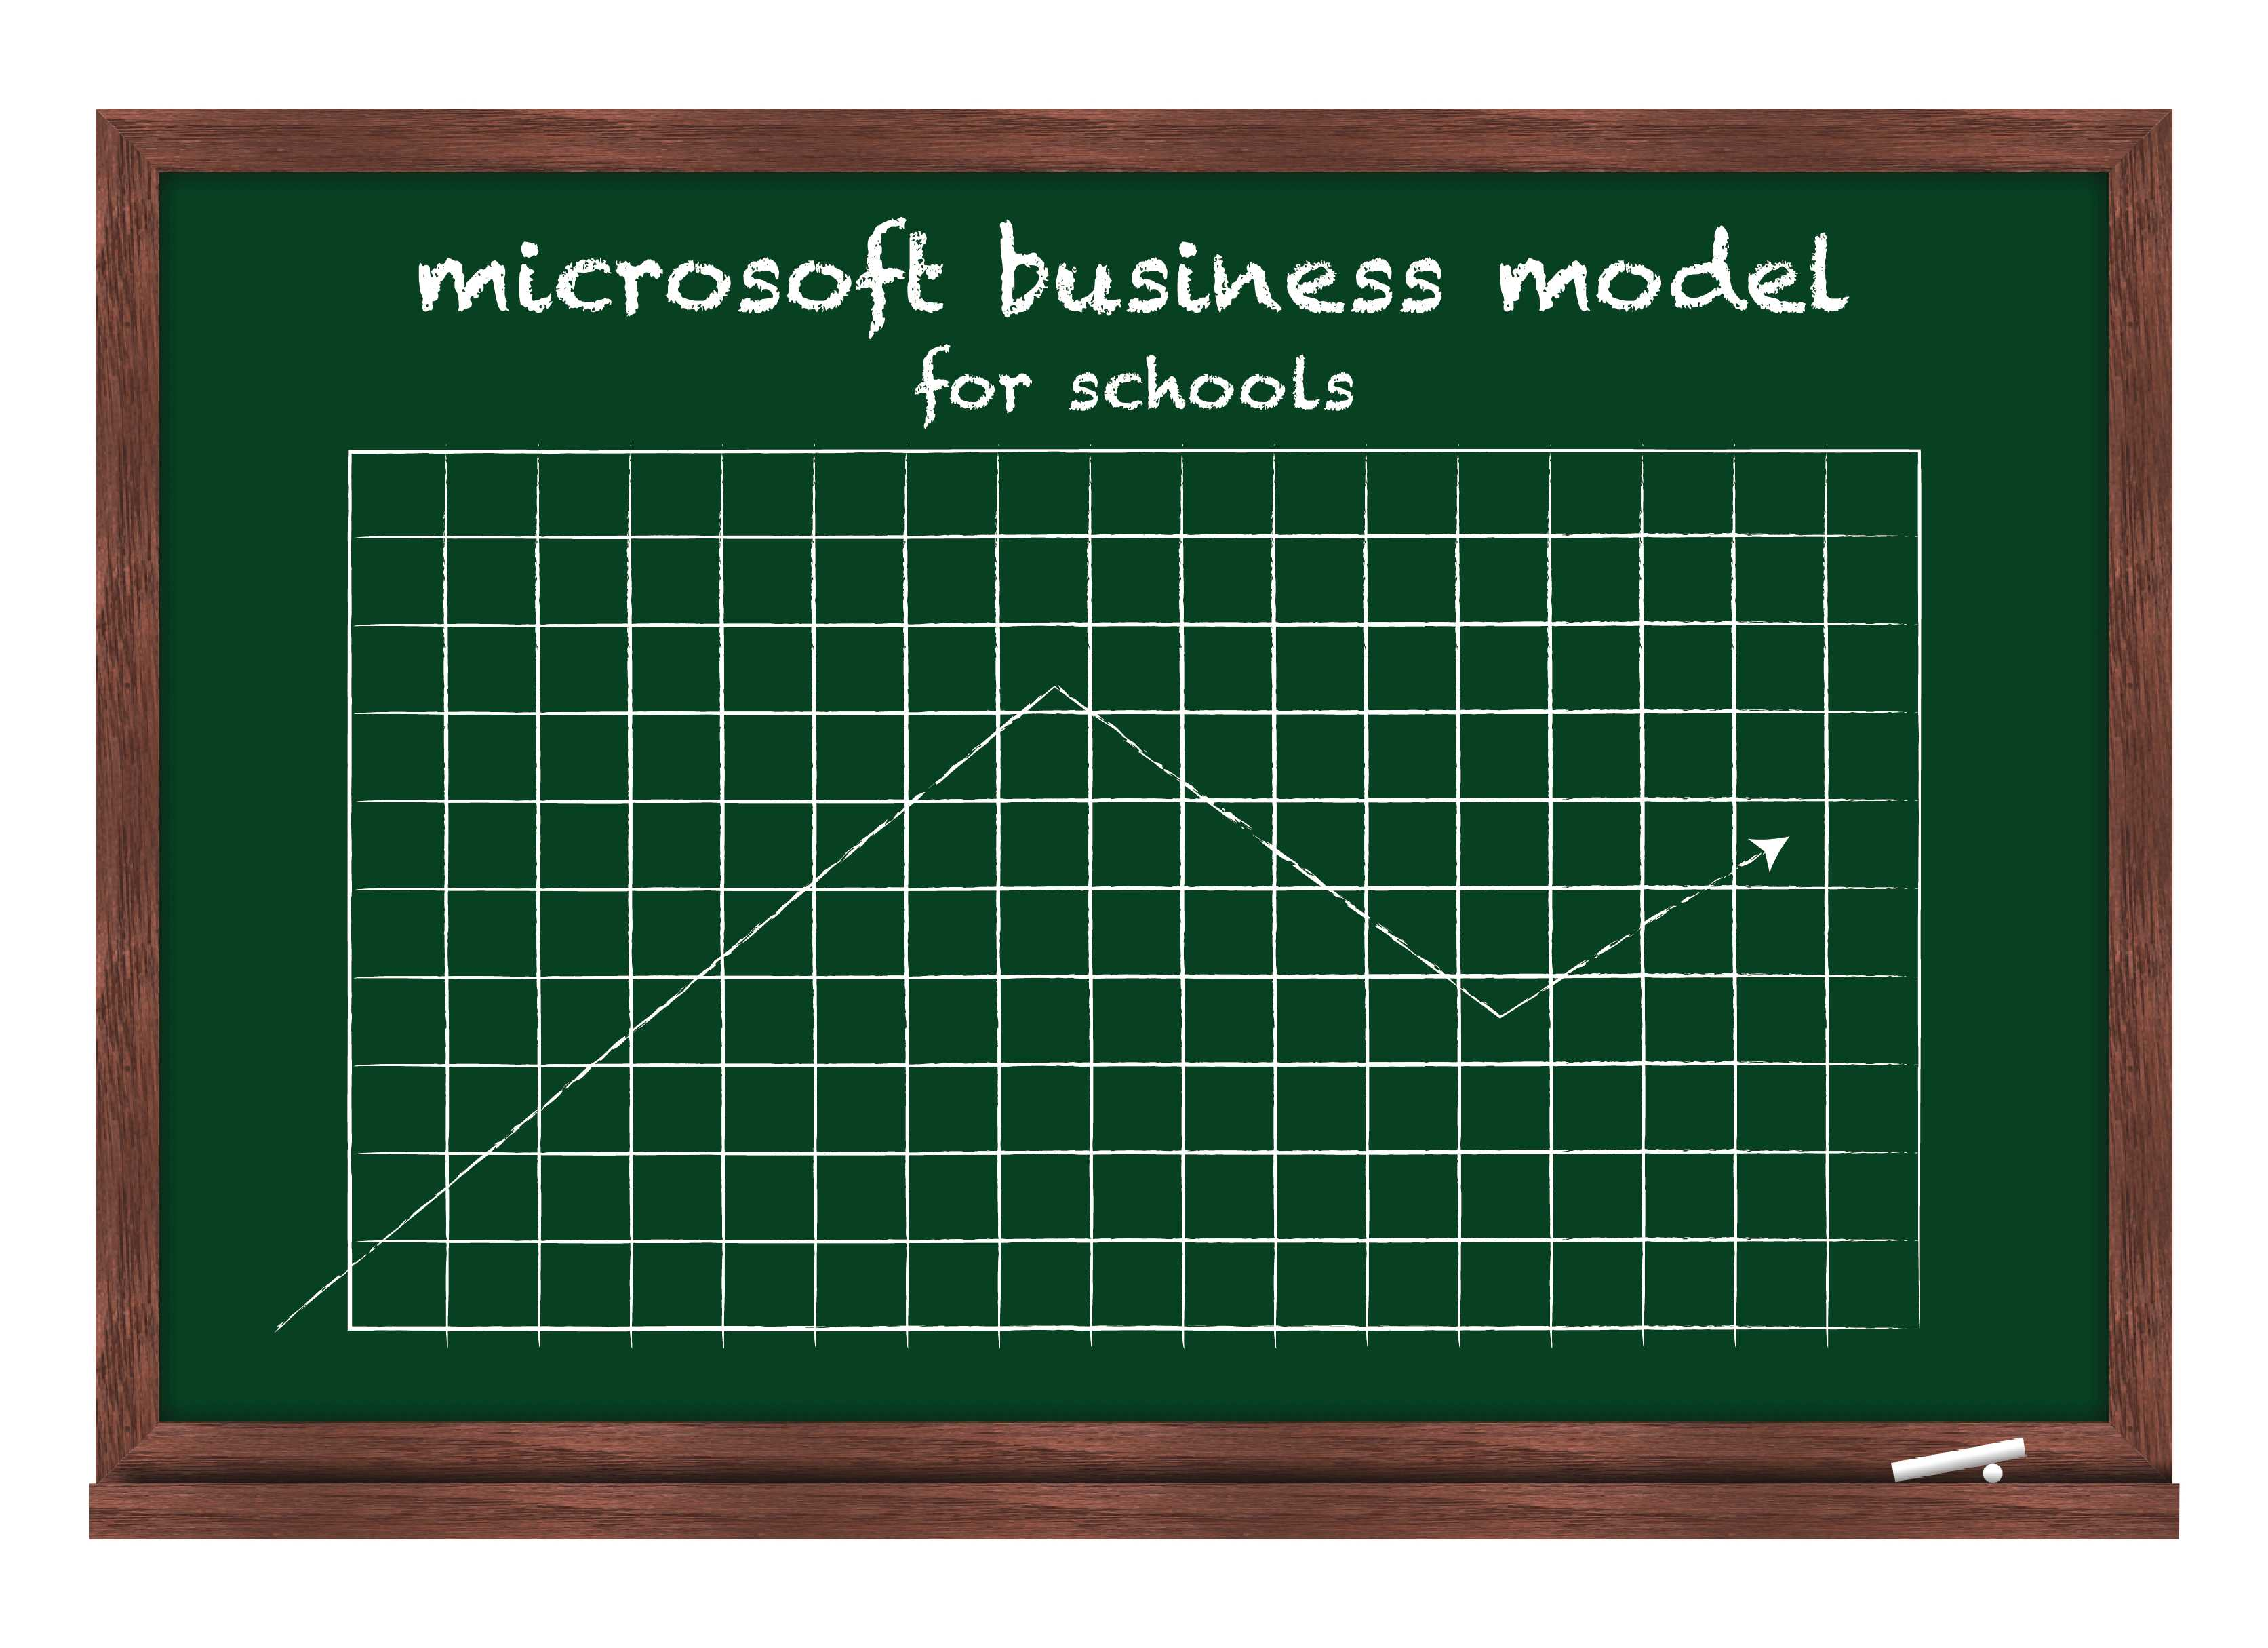 an examination of microsofts business model There are business models hundreds of years old and those only a handful of years old, such as internet freemium models some of the most profitable companies didn.